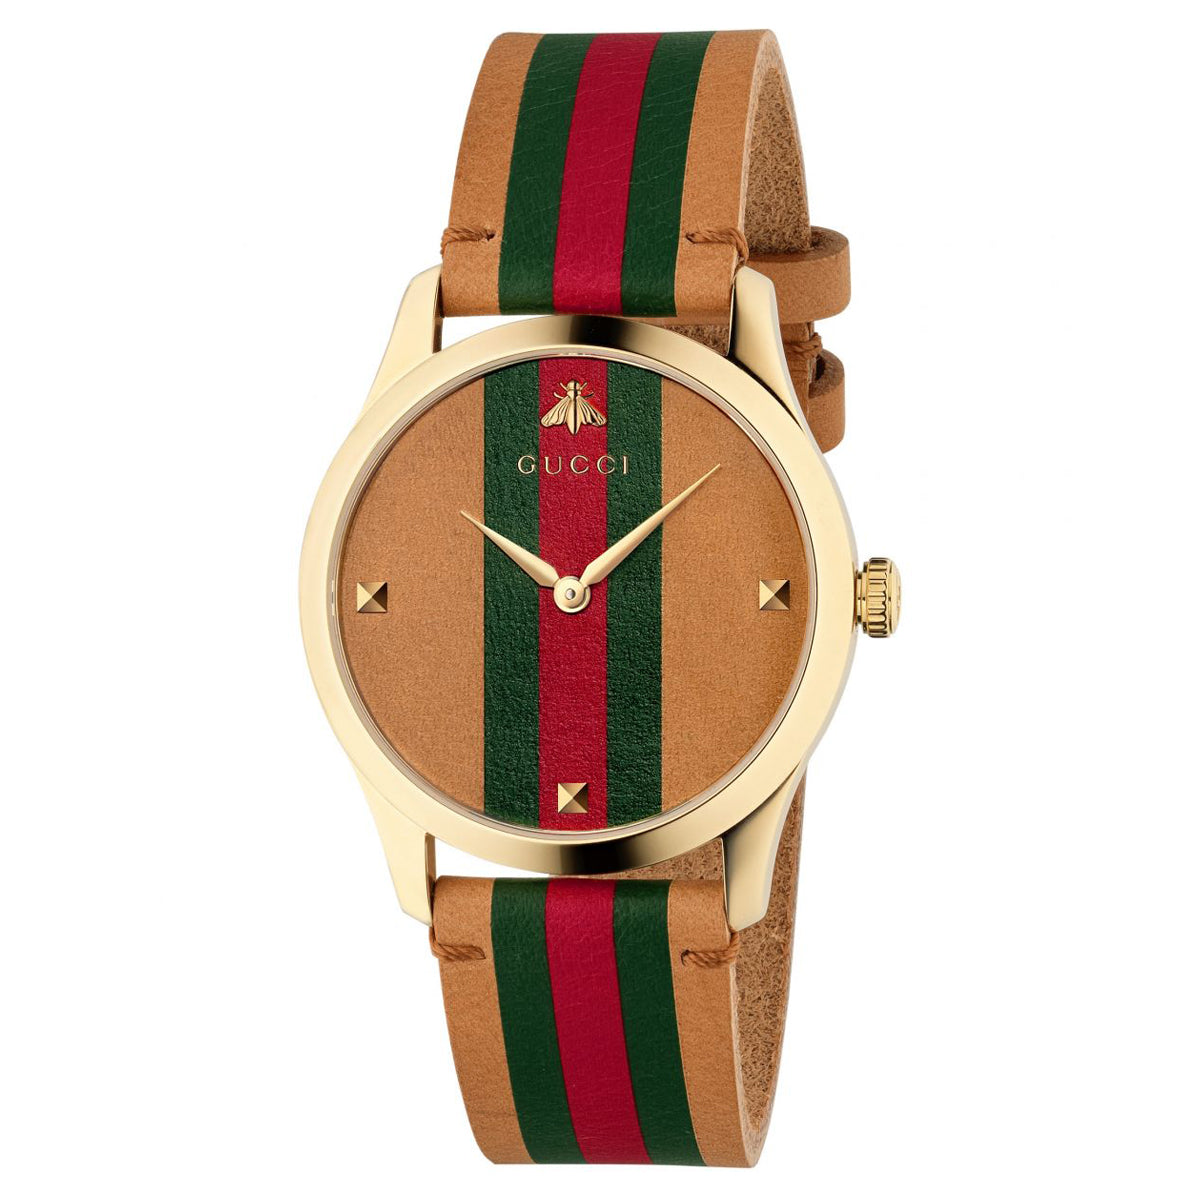 Gucci G-Timeless 38mm Watch with Tri-color Dial